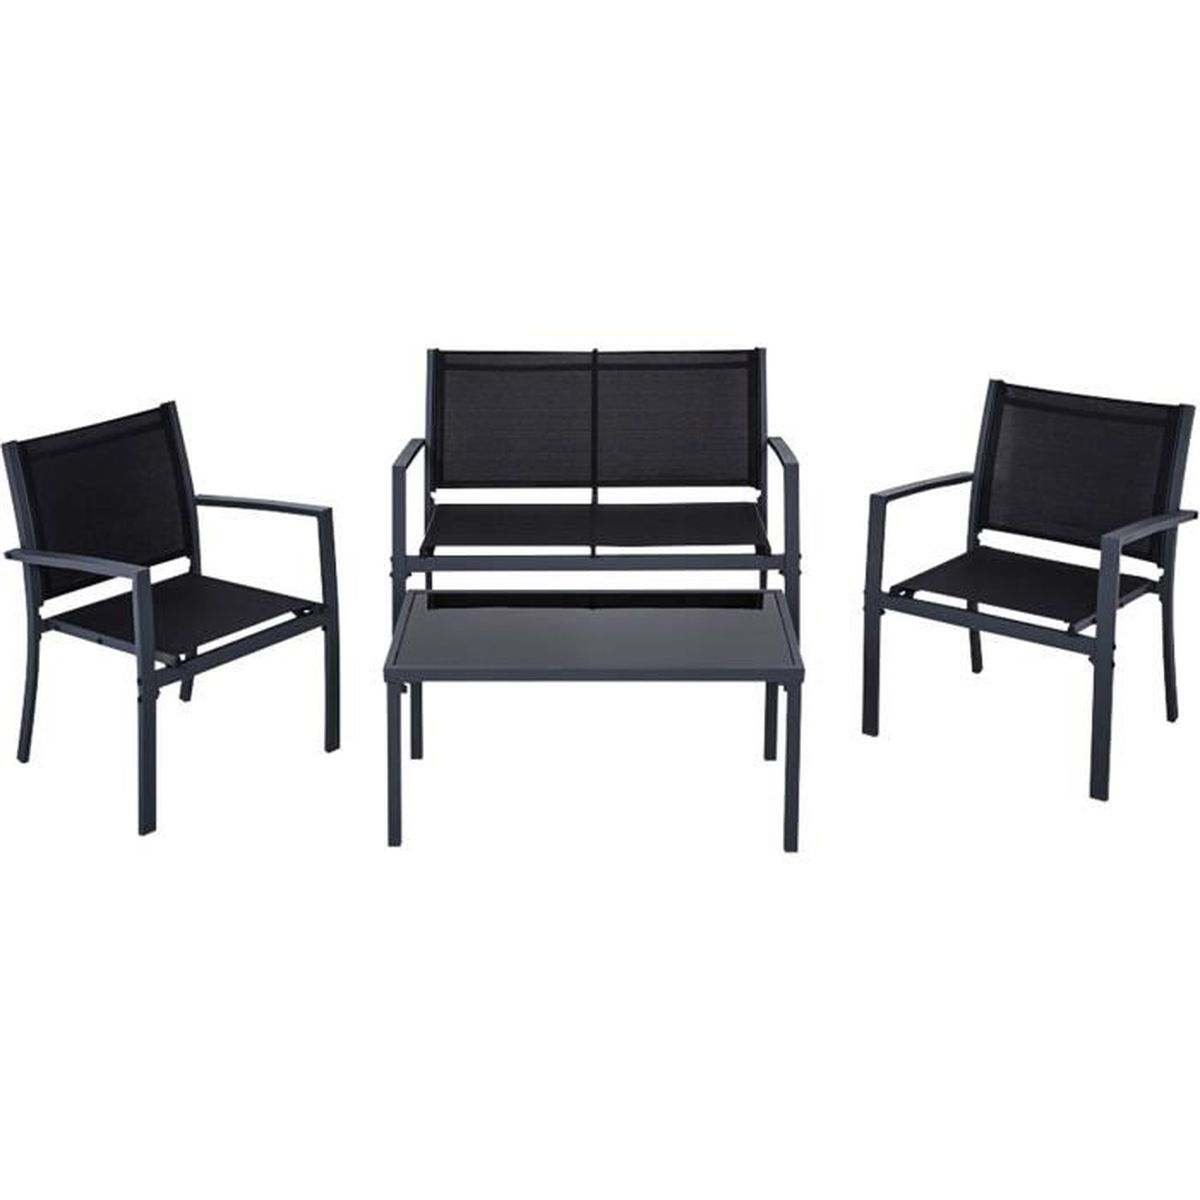 sully salon de jardin noir en acier 4 places achat. Black Bedroom Furniture Sets. Home Design Ideas